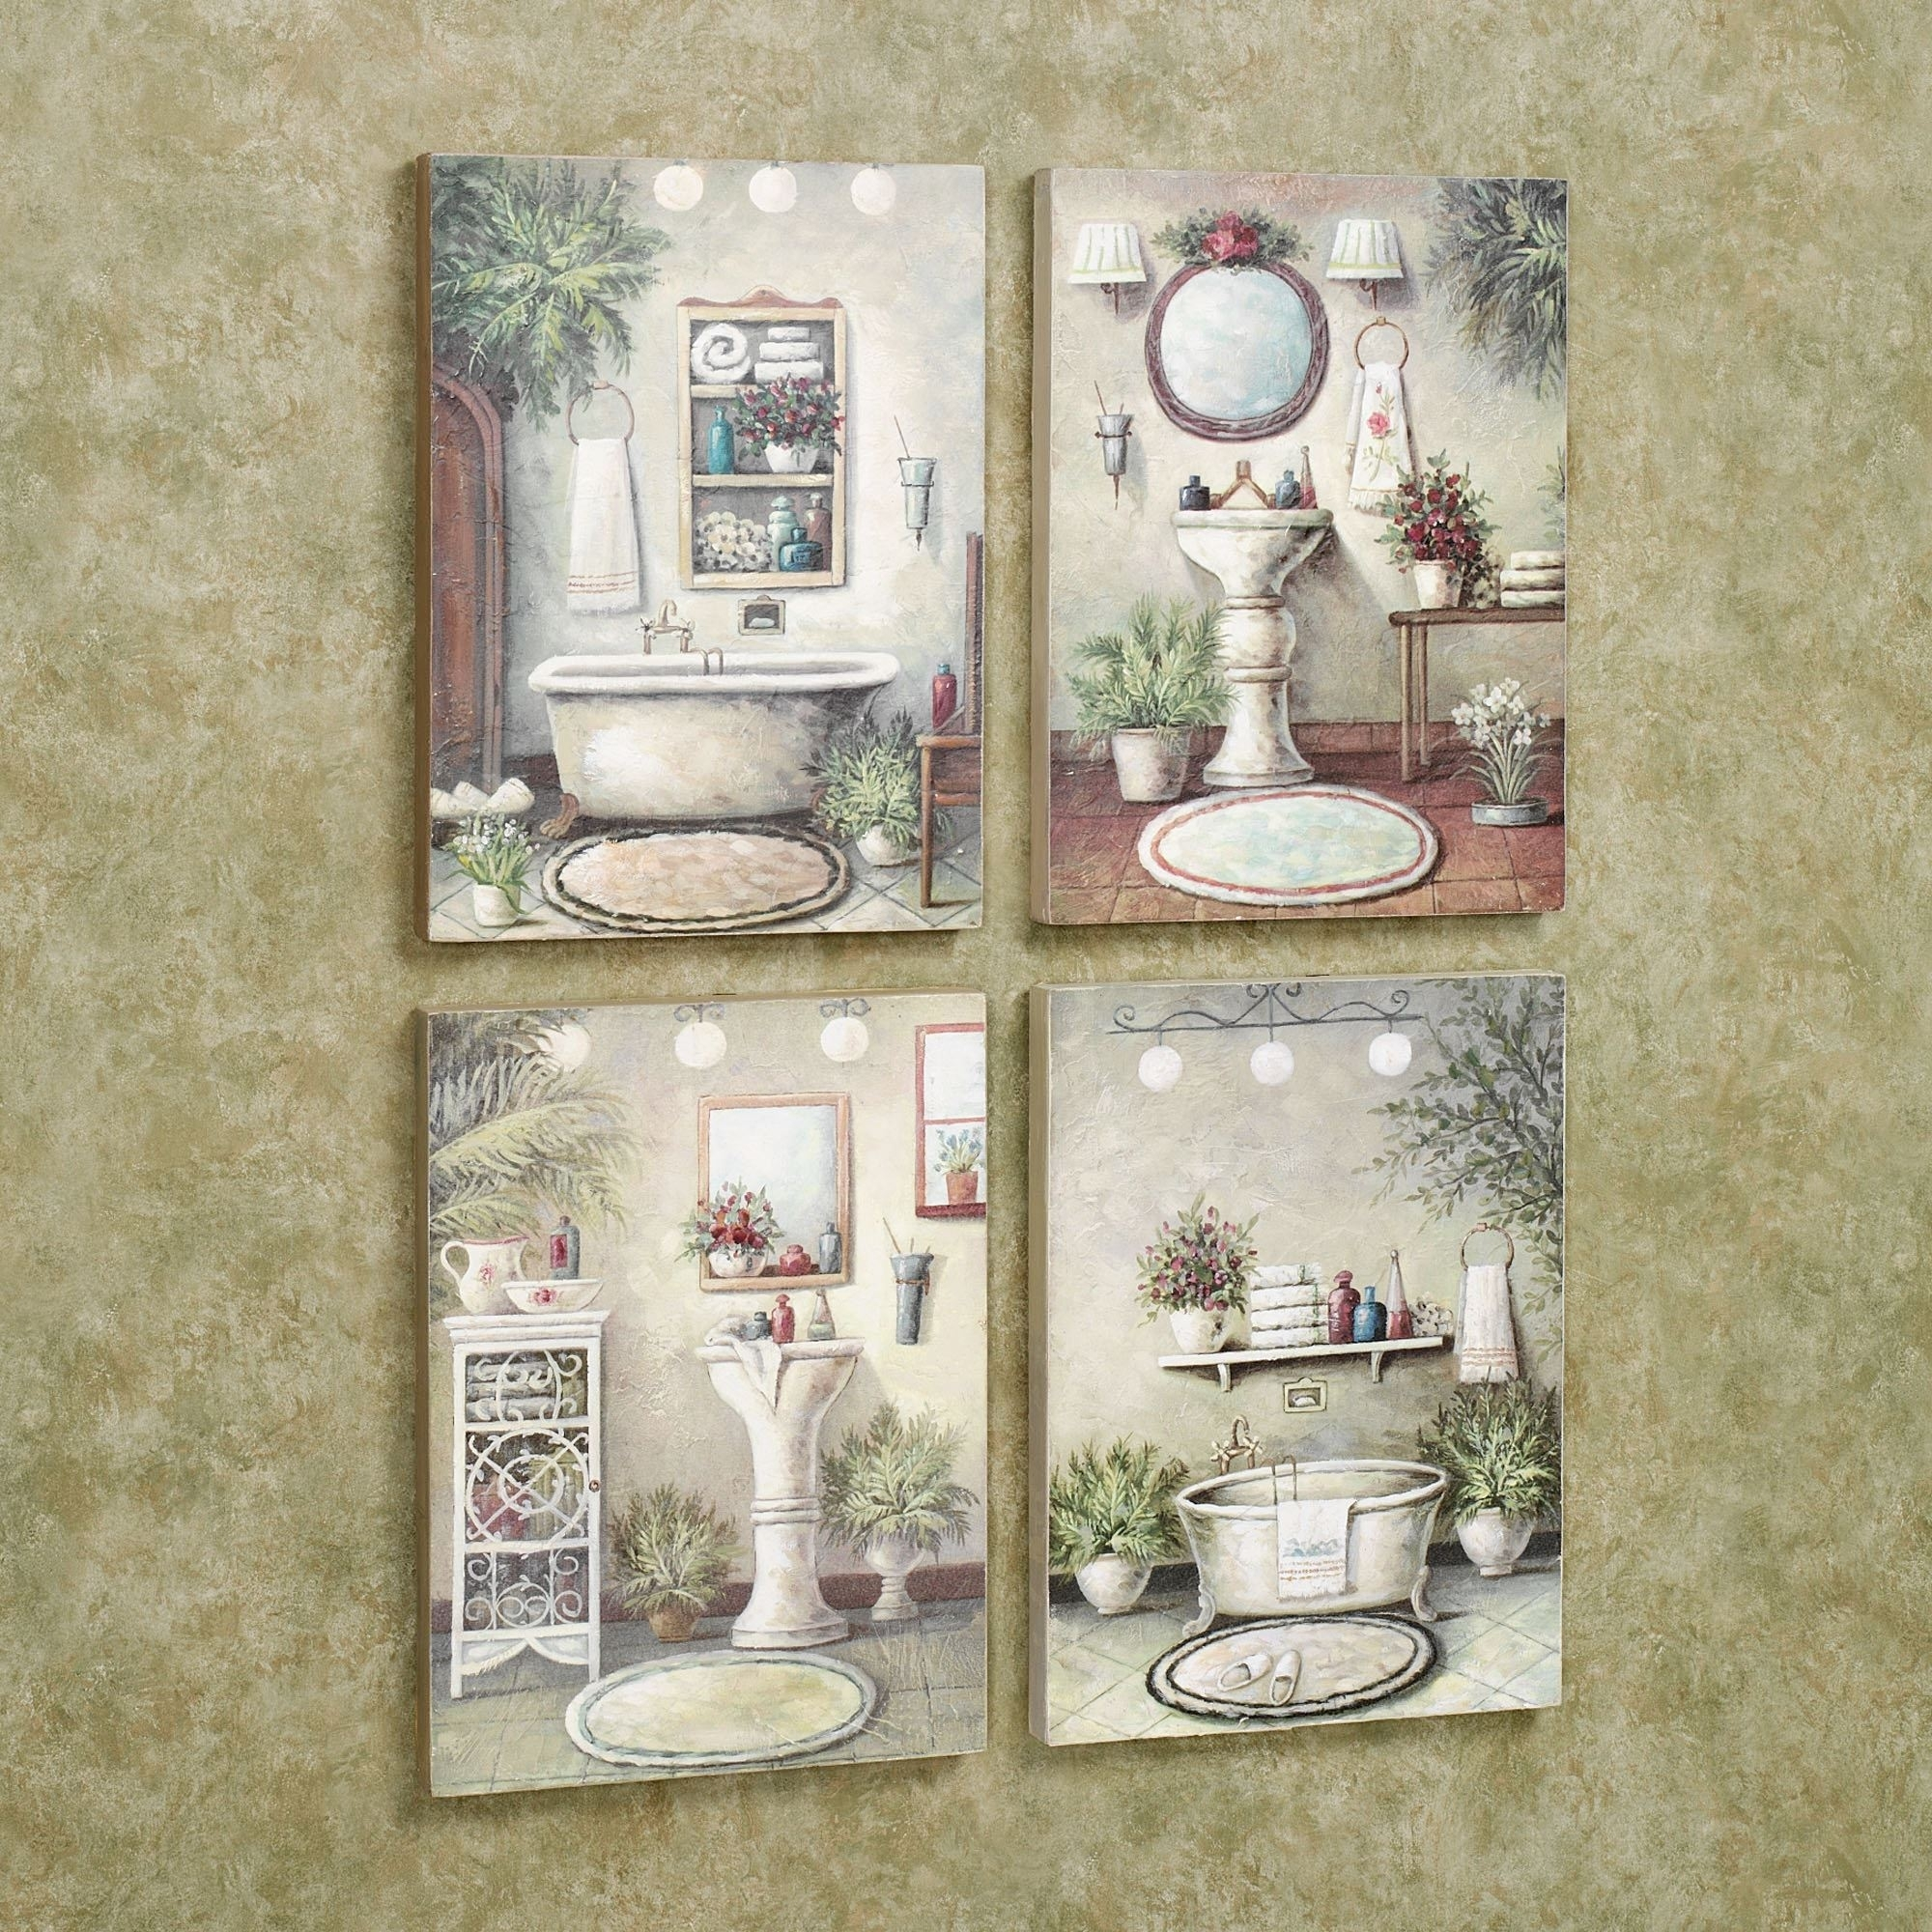 Bathroom Bliss Wooden Wall Art Plaque Set For Most Popular Wall Art For Bathroom (View 16 of 20)